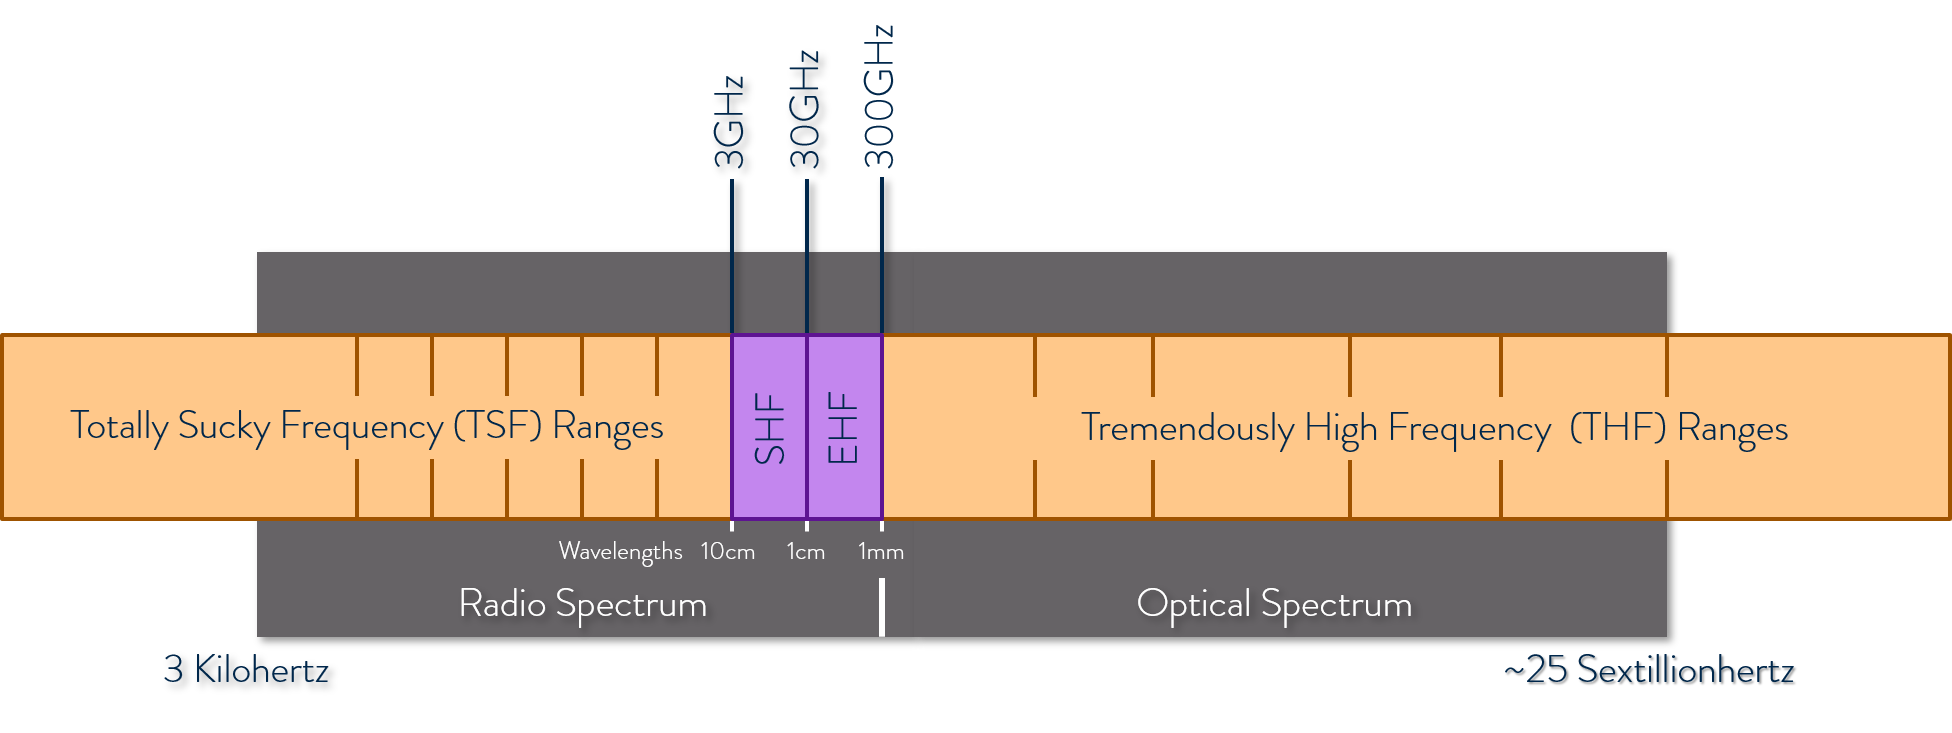 Working with millimeter waves: A tale of 5G new radio